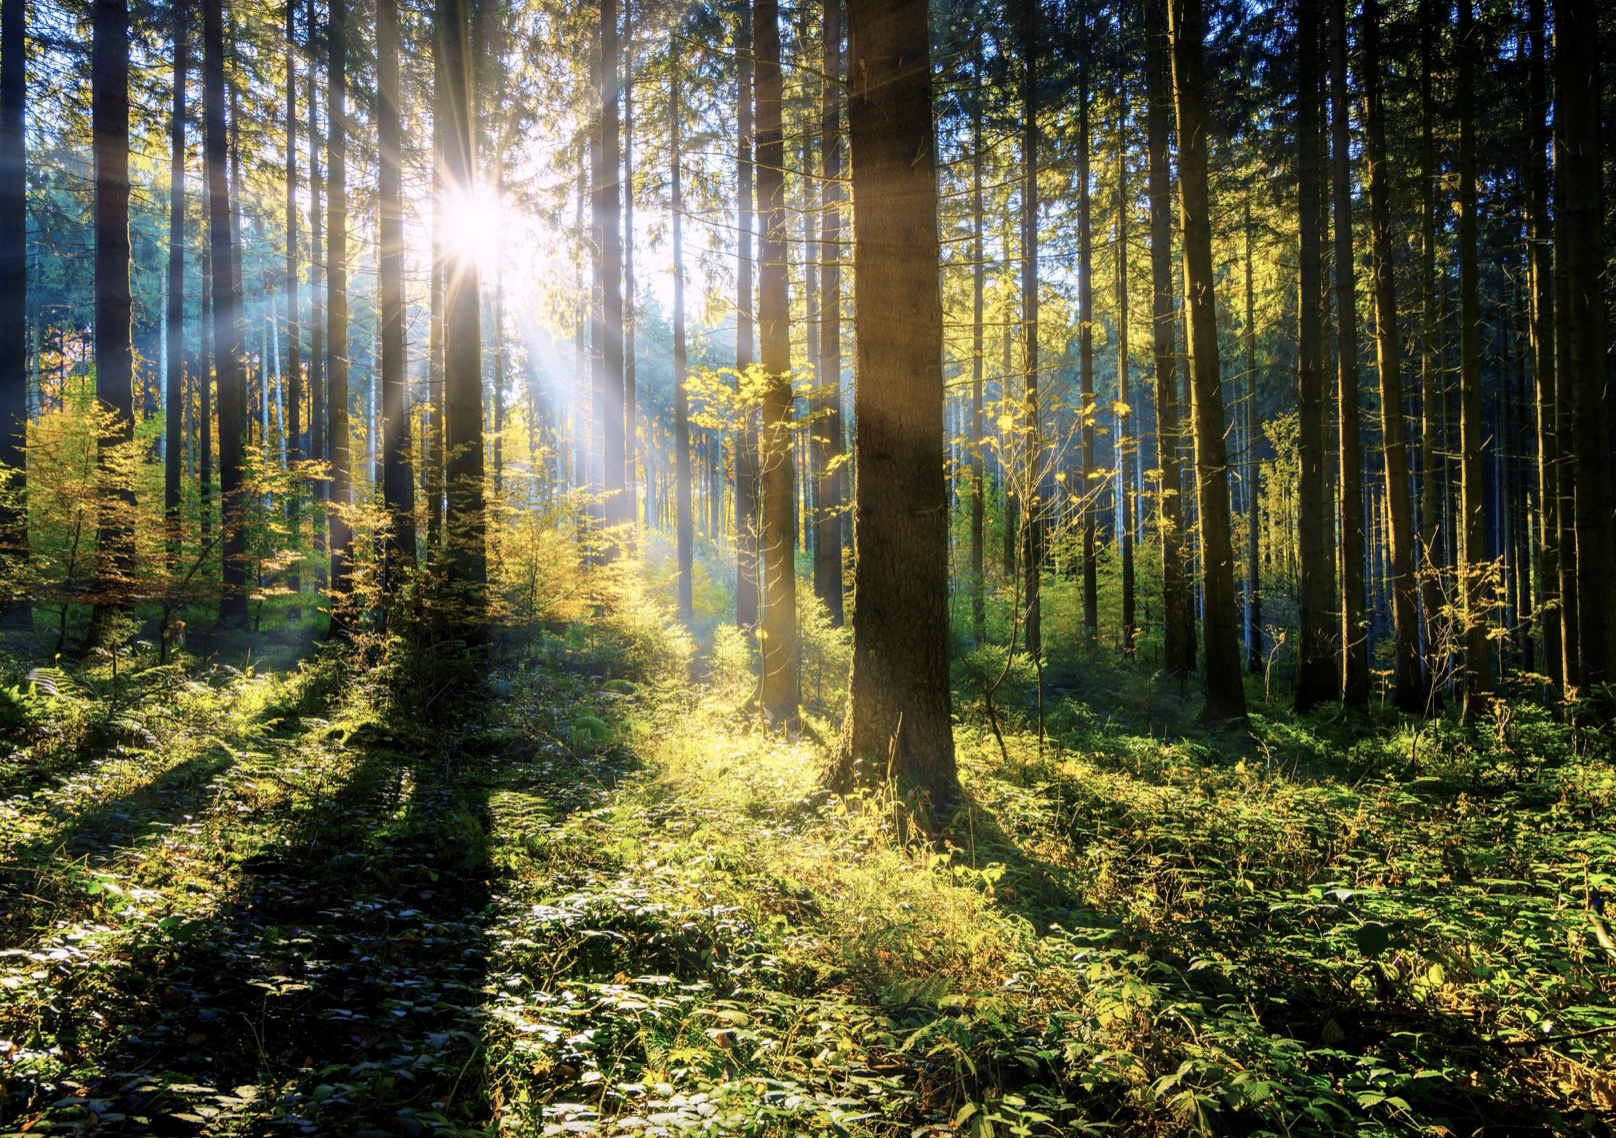 Image of trees in a forest